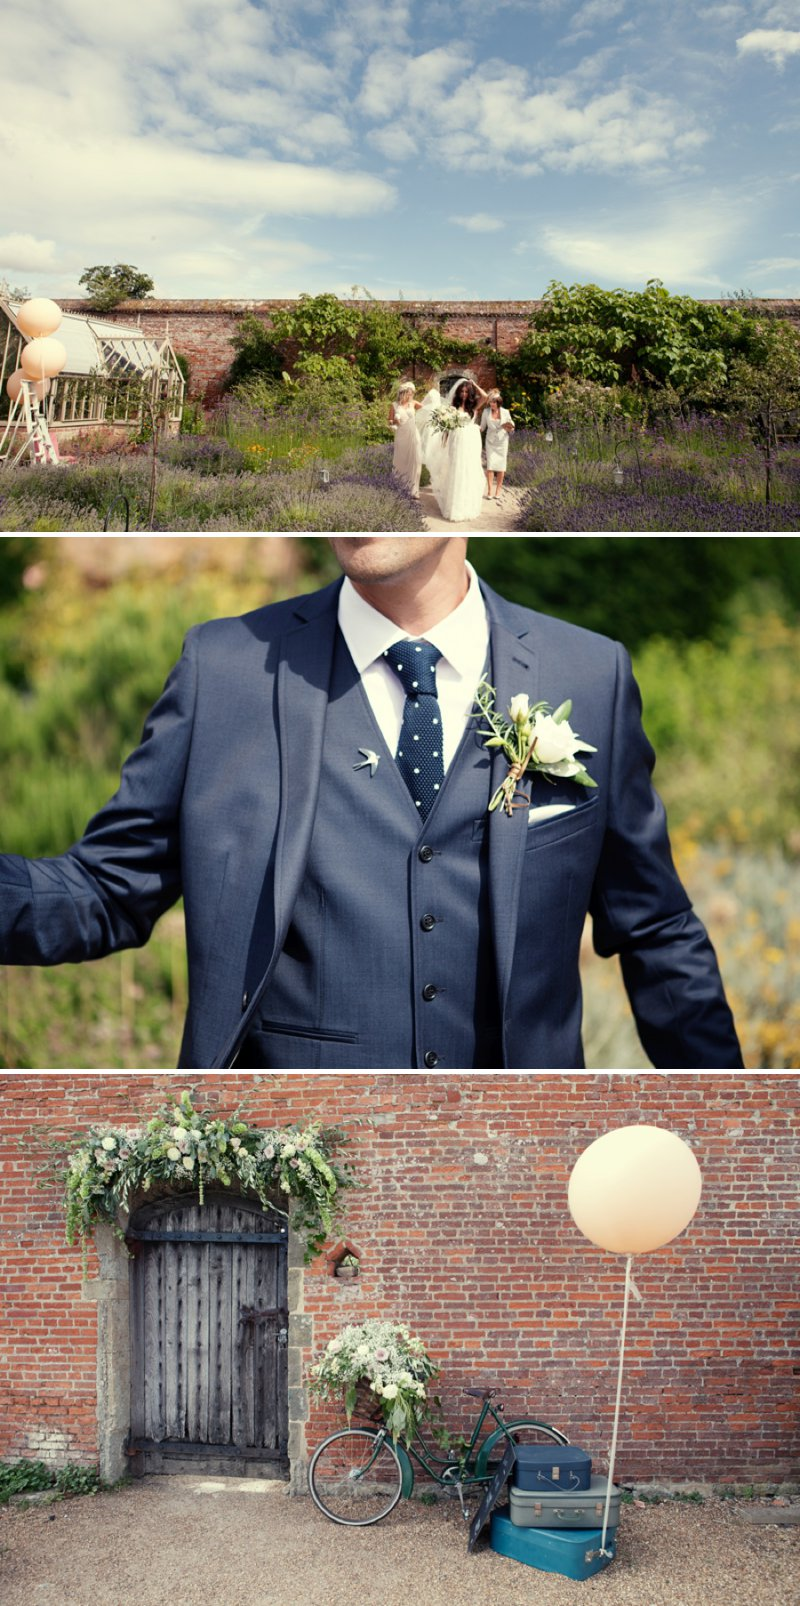 Stylish Wedding At The Walled Garden Cowdray With Bride In San Patrick Dress And Jimmy Choo Shoes And A Malene Birger Sequinned Jacket And Groom In Navy Suit From Topman 1